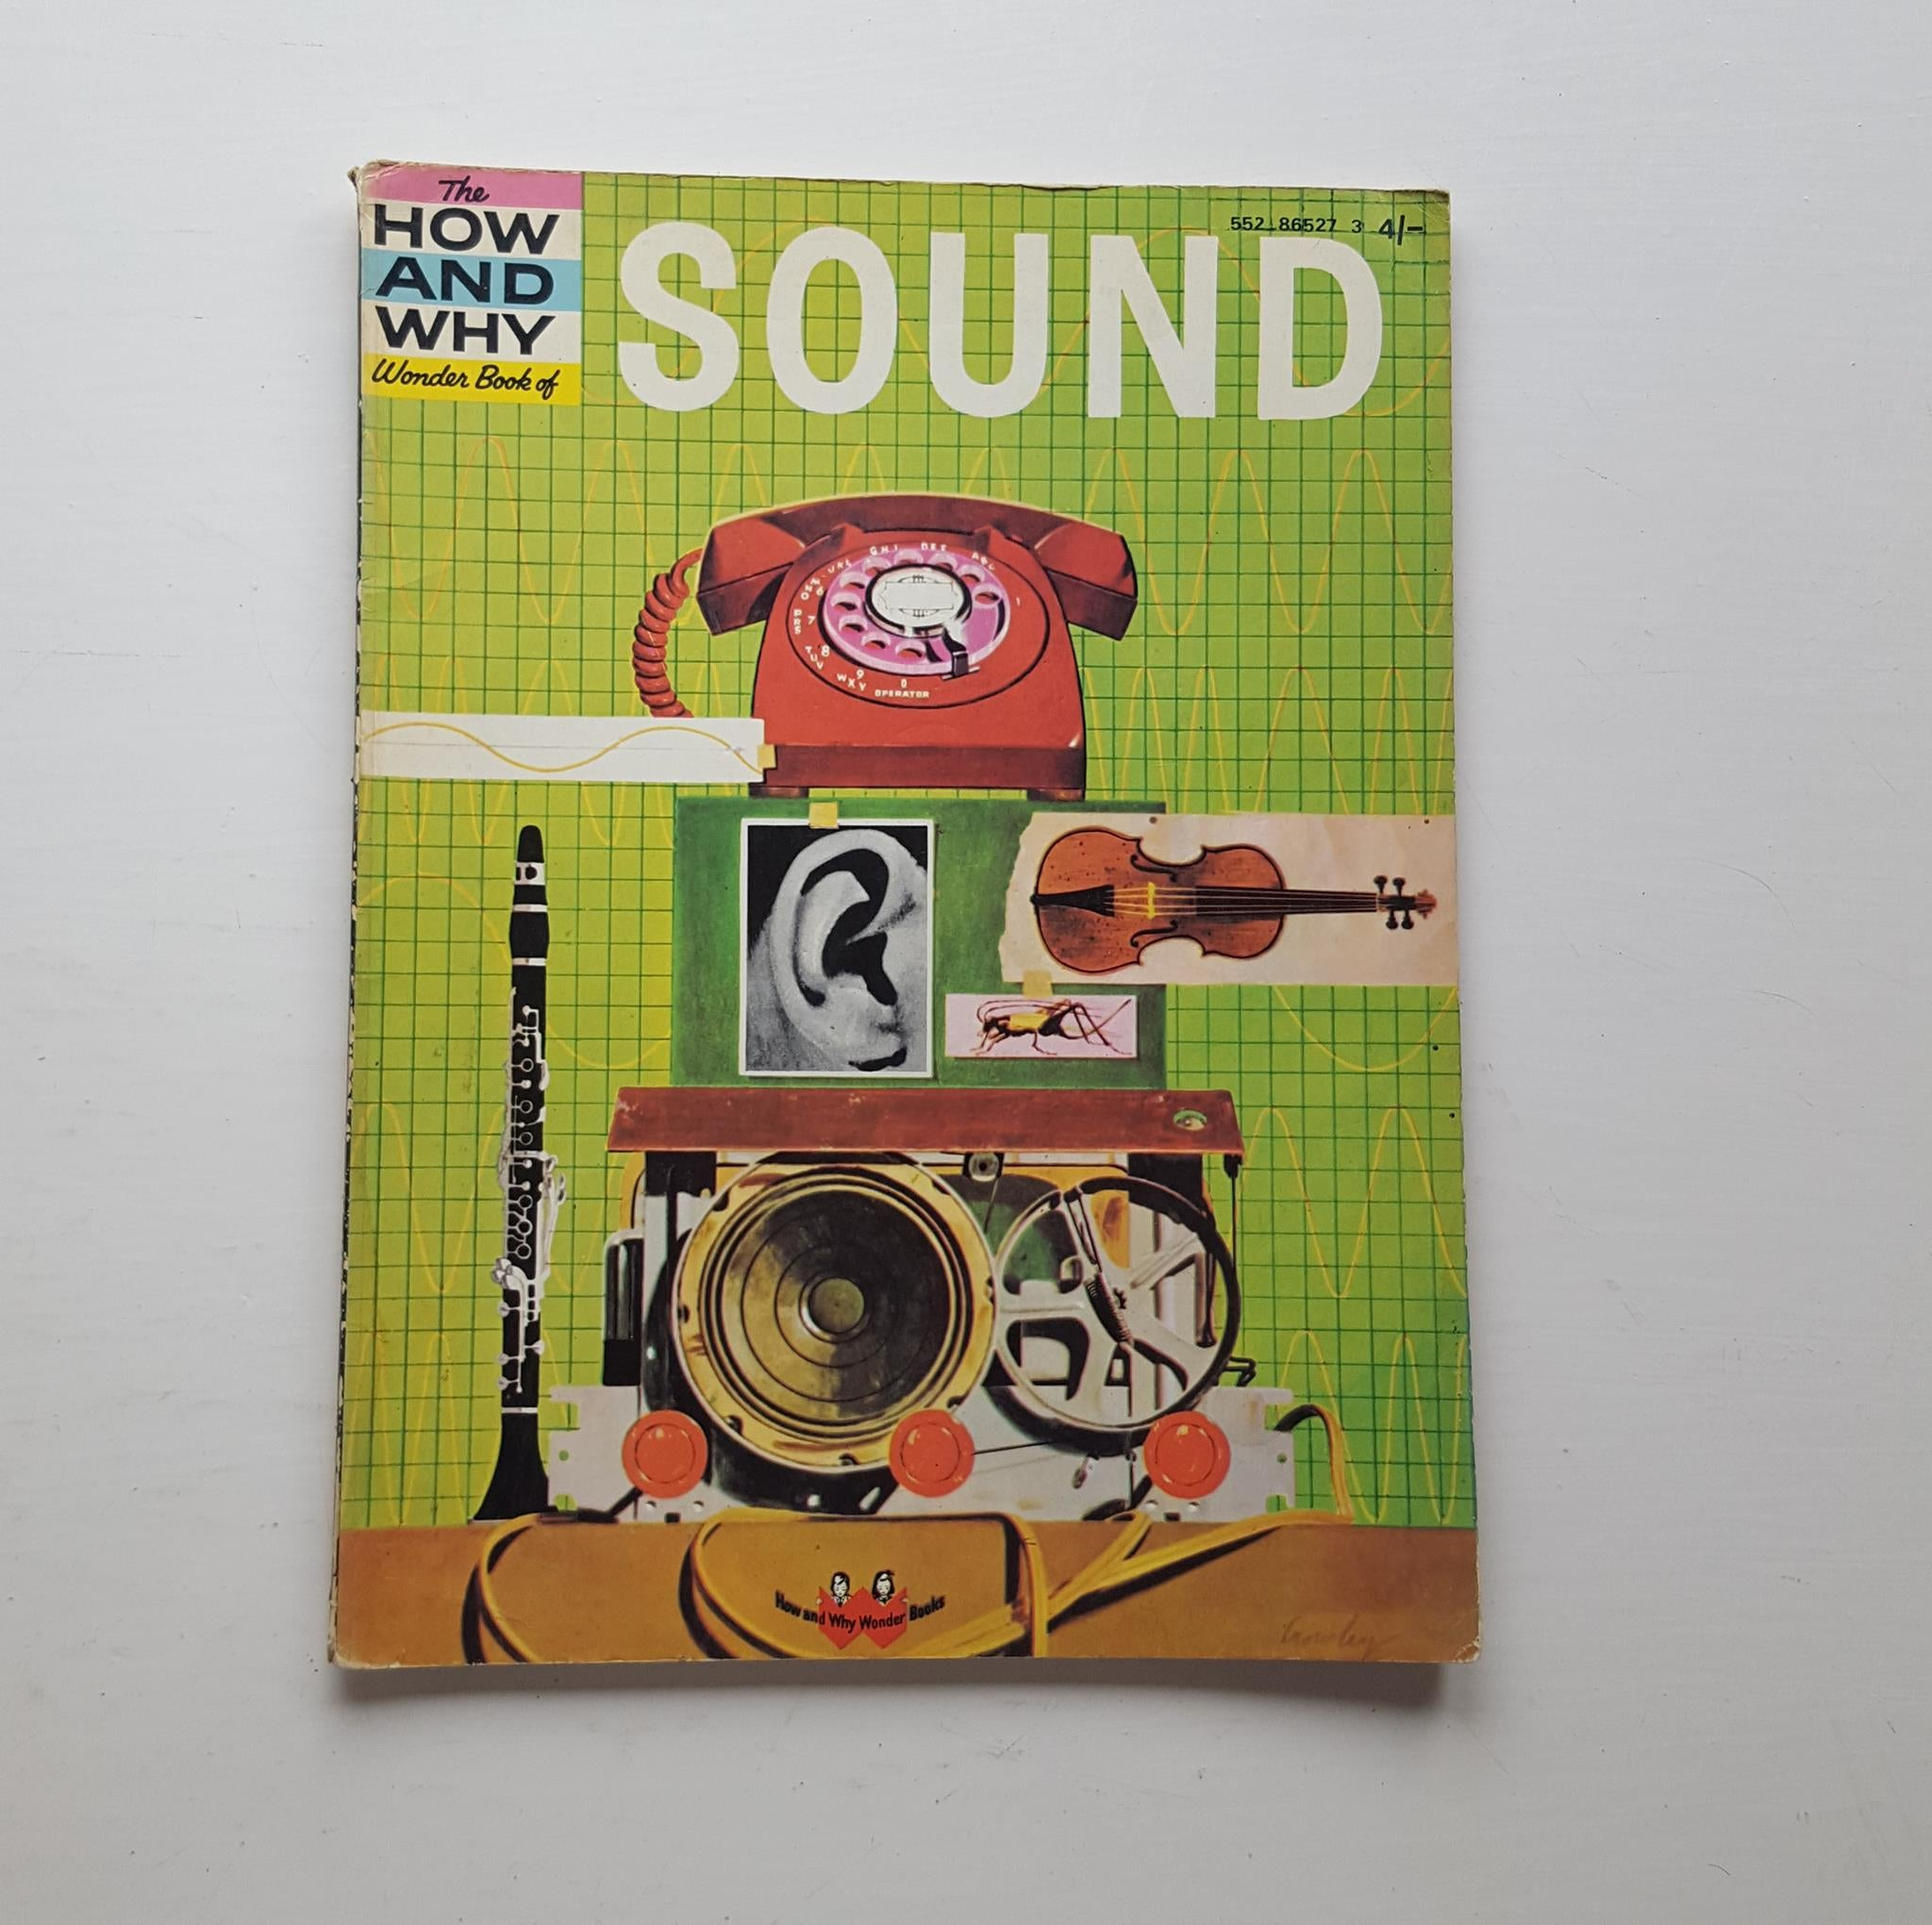 The How and Why Wonder Book of Sound by Martin L. Keen